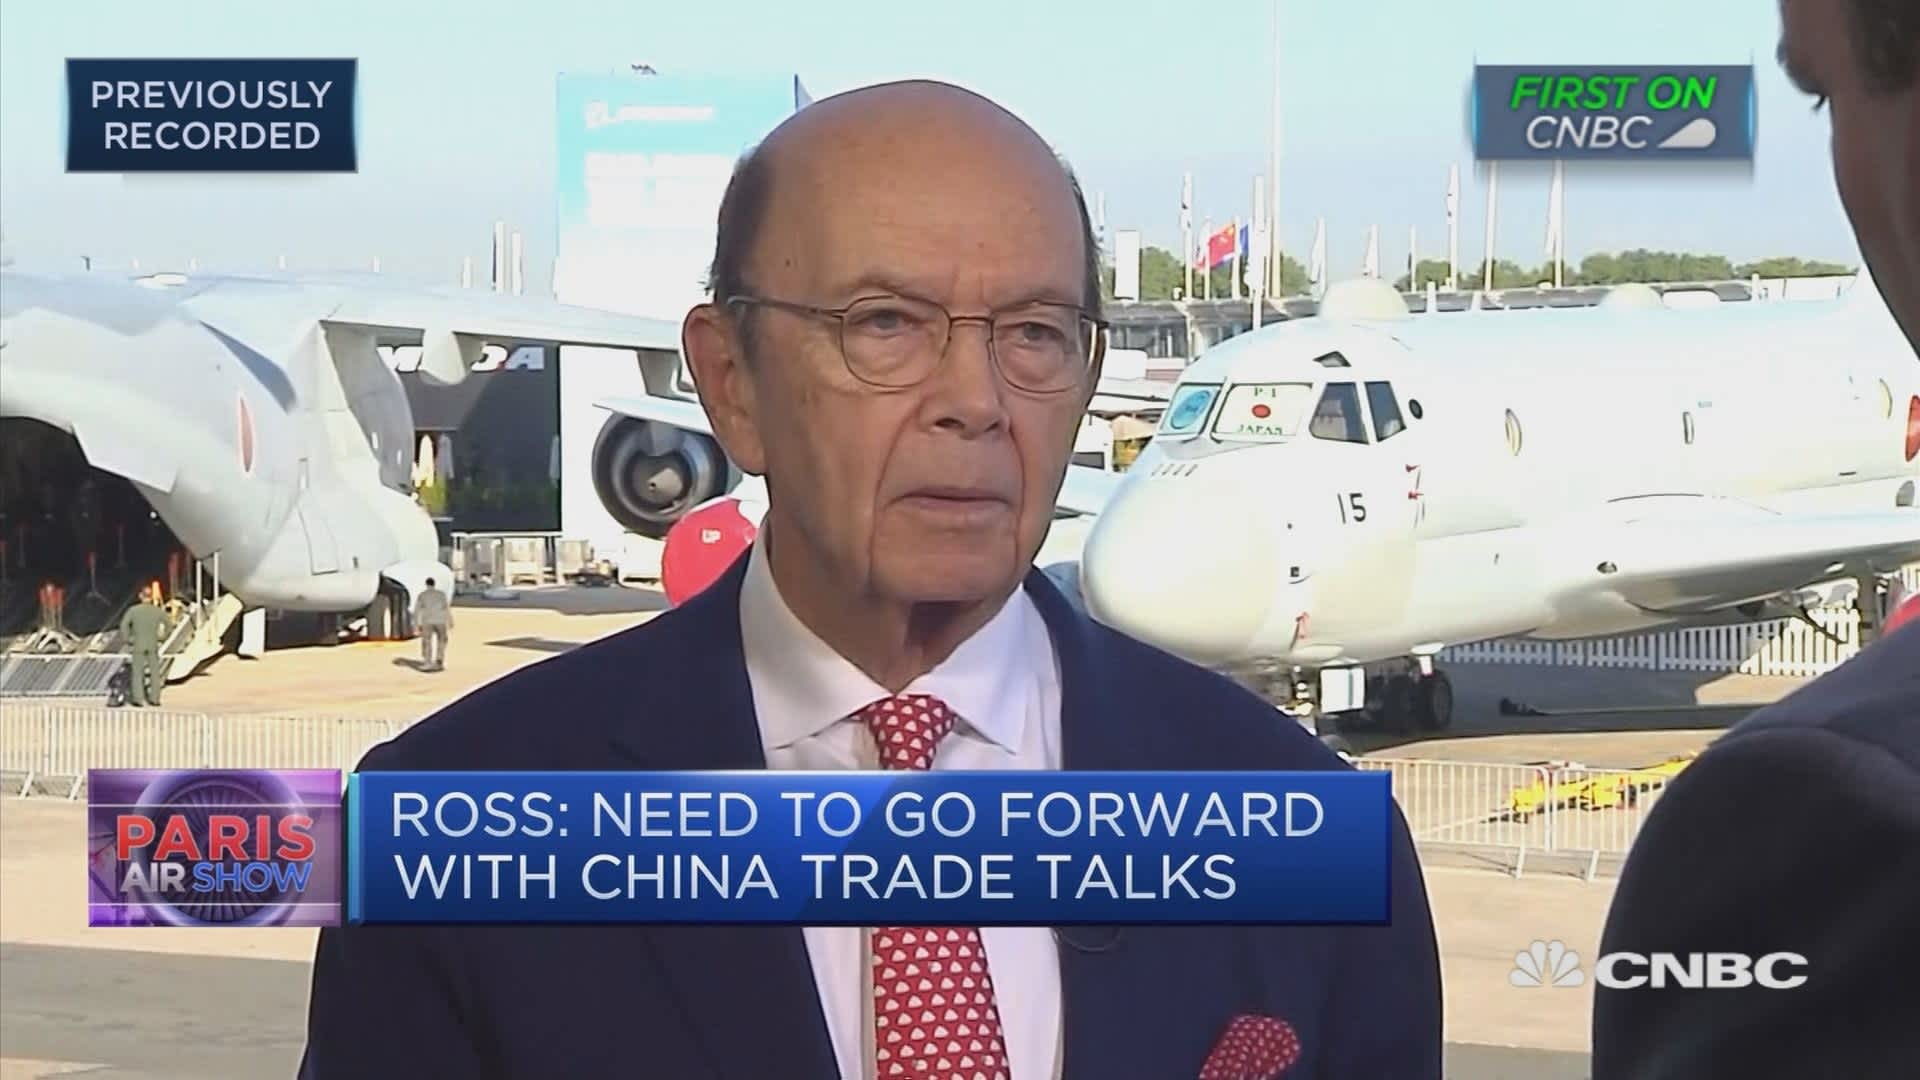 It's 'complicated to negotiate with the European Union,' Wilbur Ross says